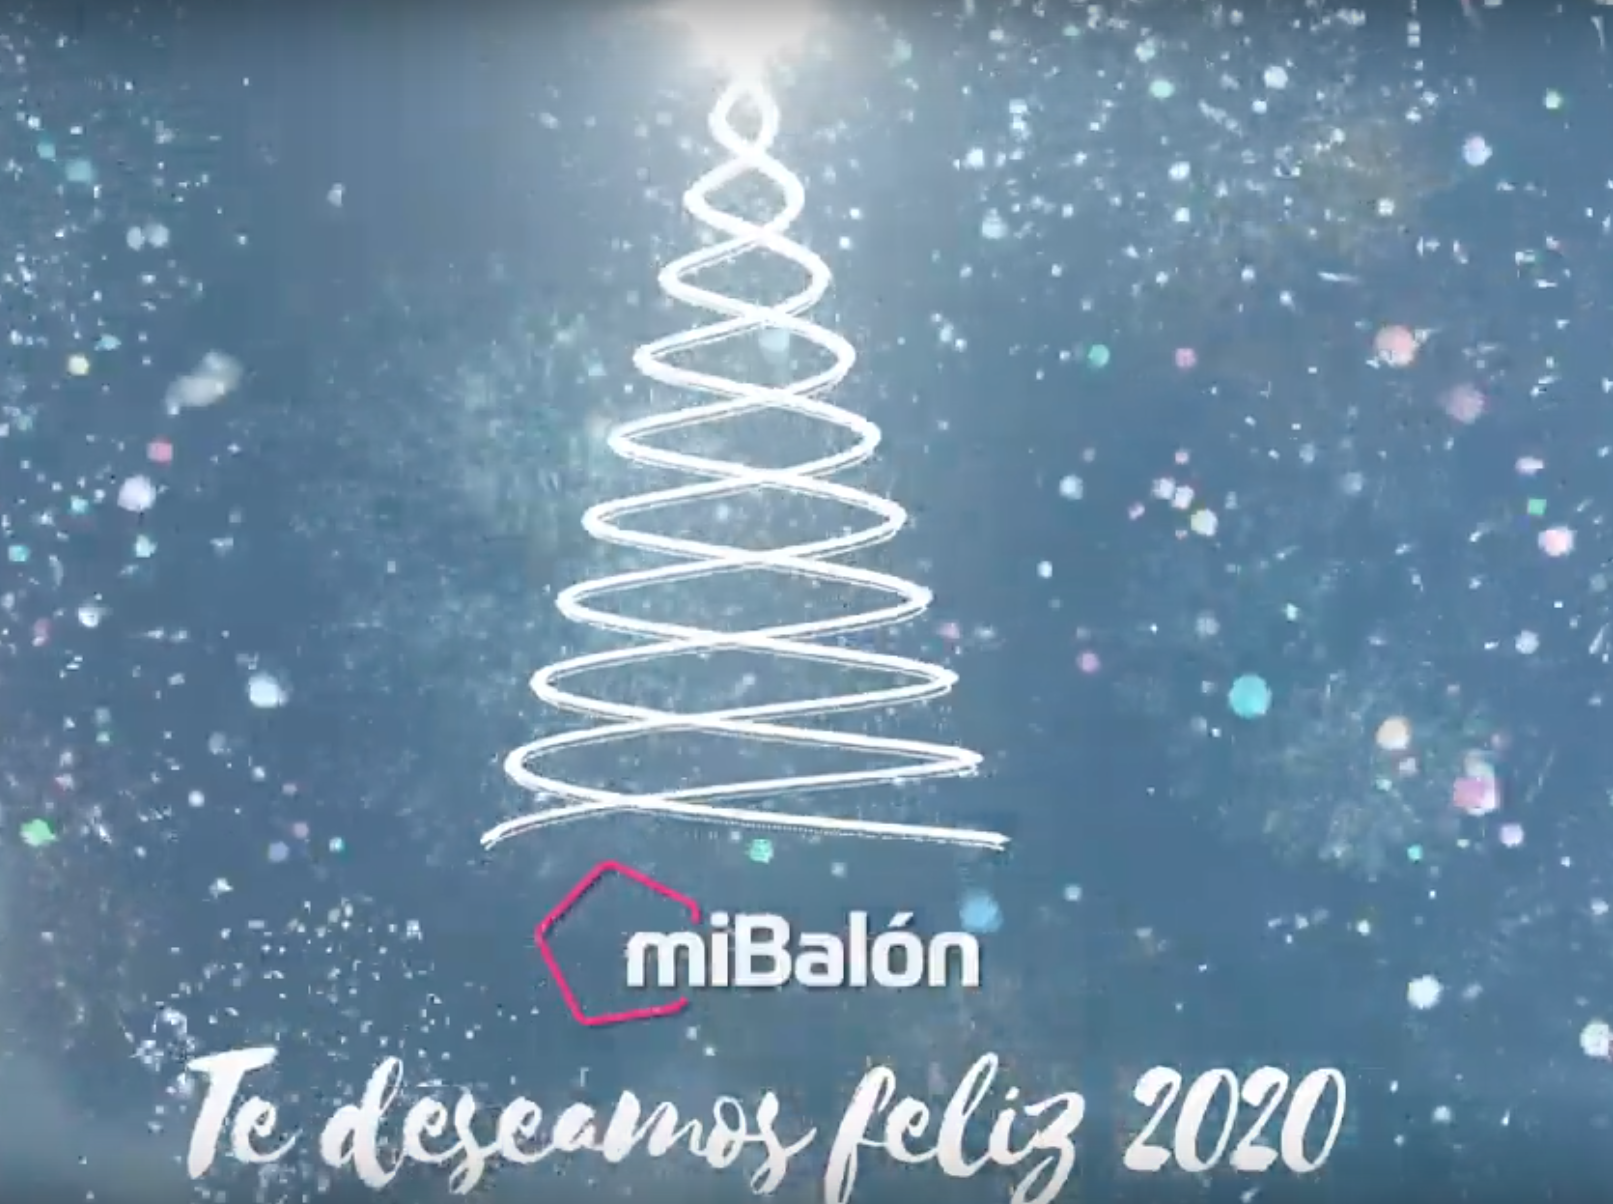 miBalón Sport Marketing Agency te desea feliz año 2020